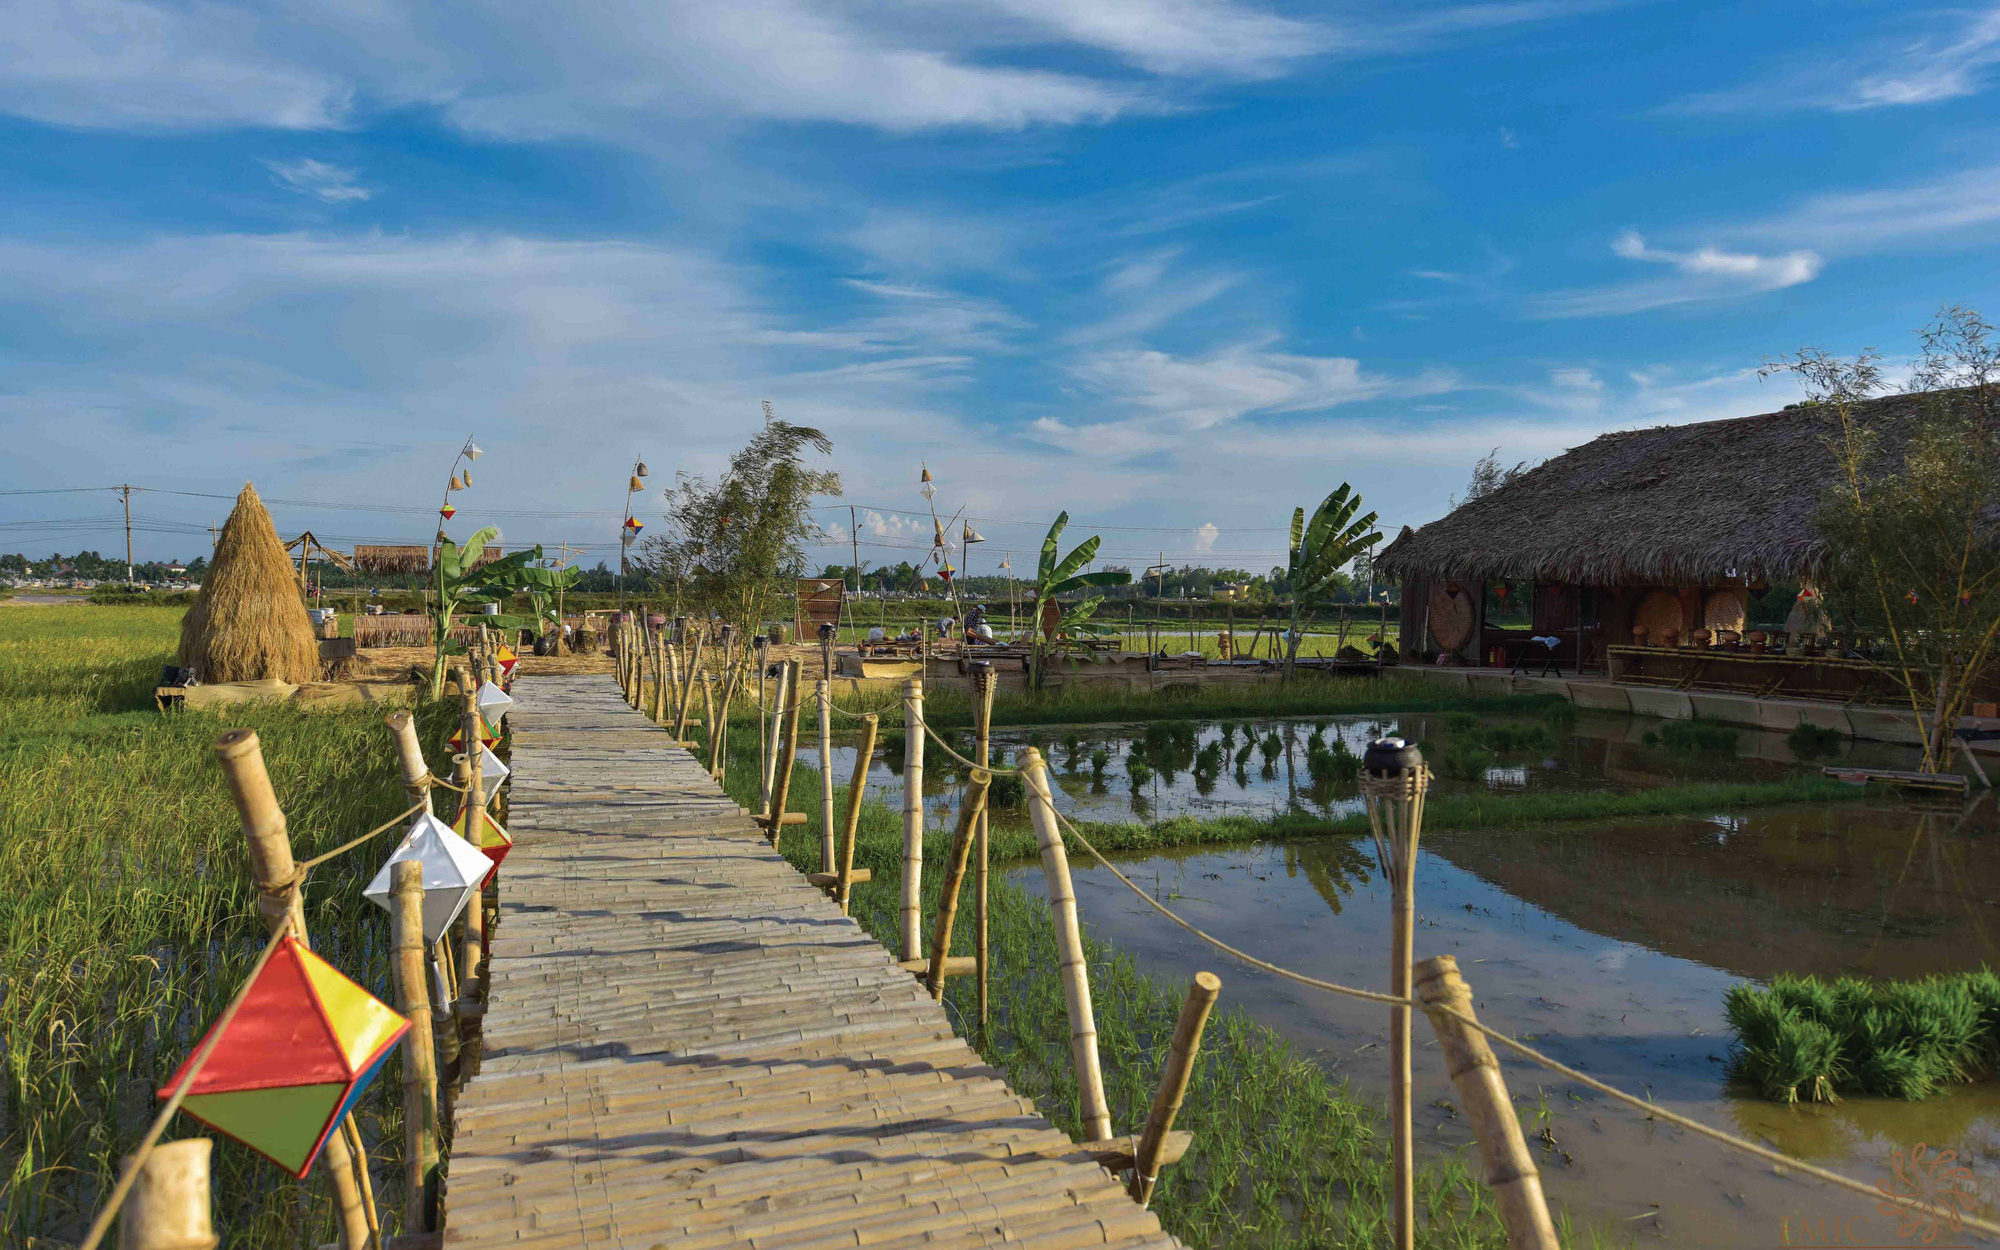 A view of The Field Restaurant located in Cam Thanh Commune, Hoi An City, Quang Nam Province in central Vietnam. Photo: Thai Ba Dung / Tuoi Tre